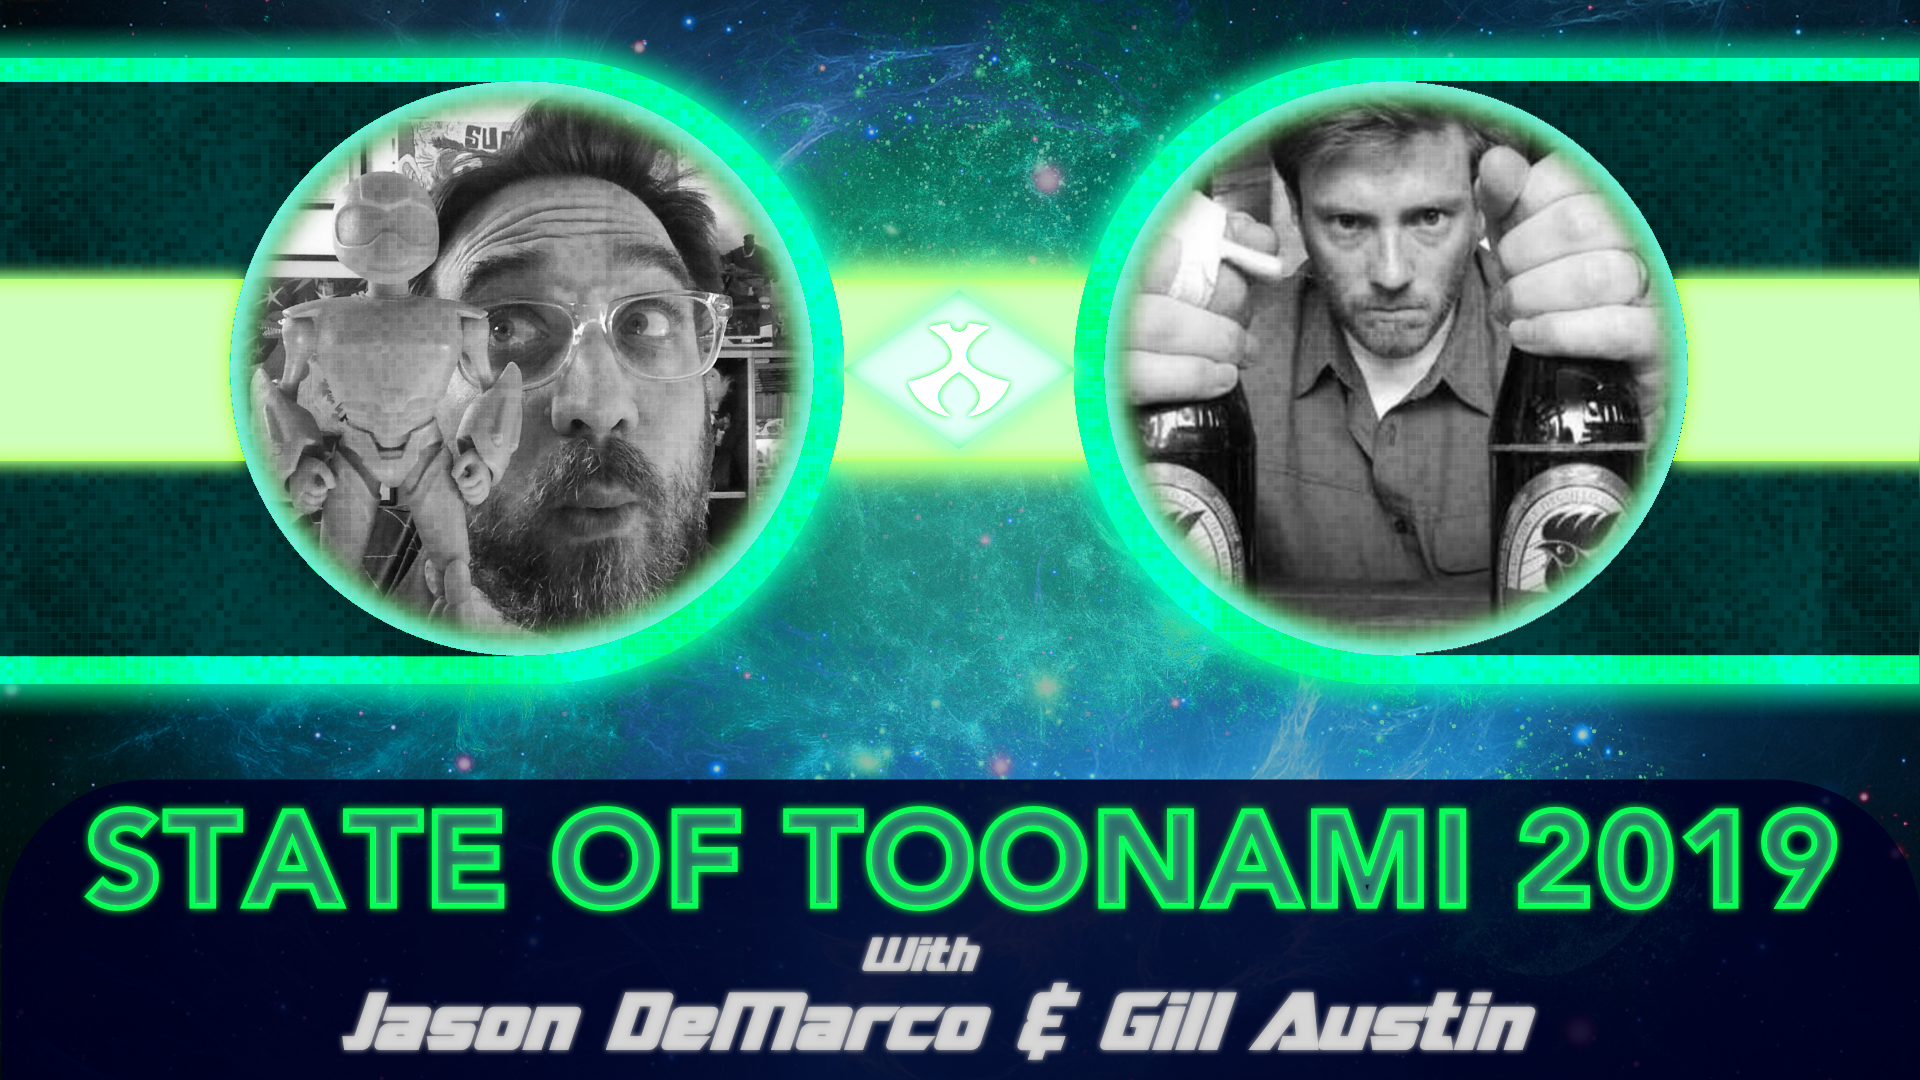 EXCLUSIVE: Toonami Squad Interviews Jason DeMarco And Gill Austin | Current State of Toonami 2019